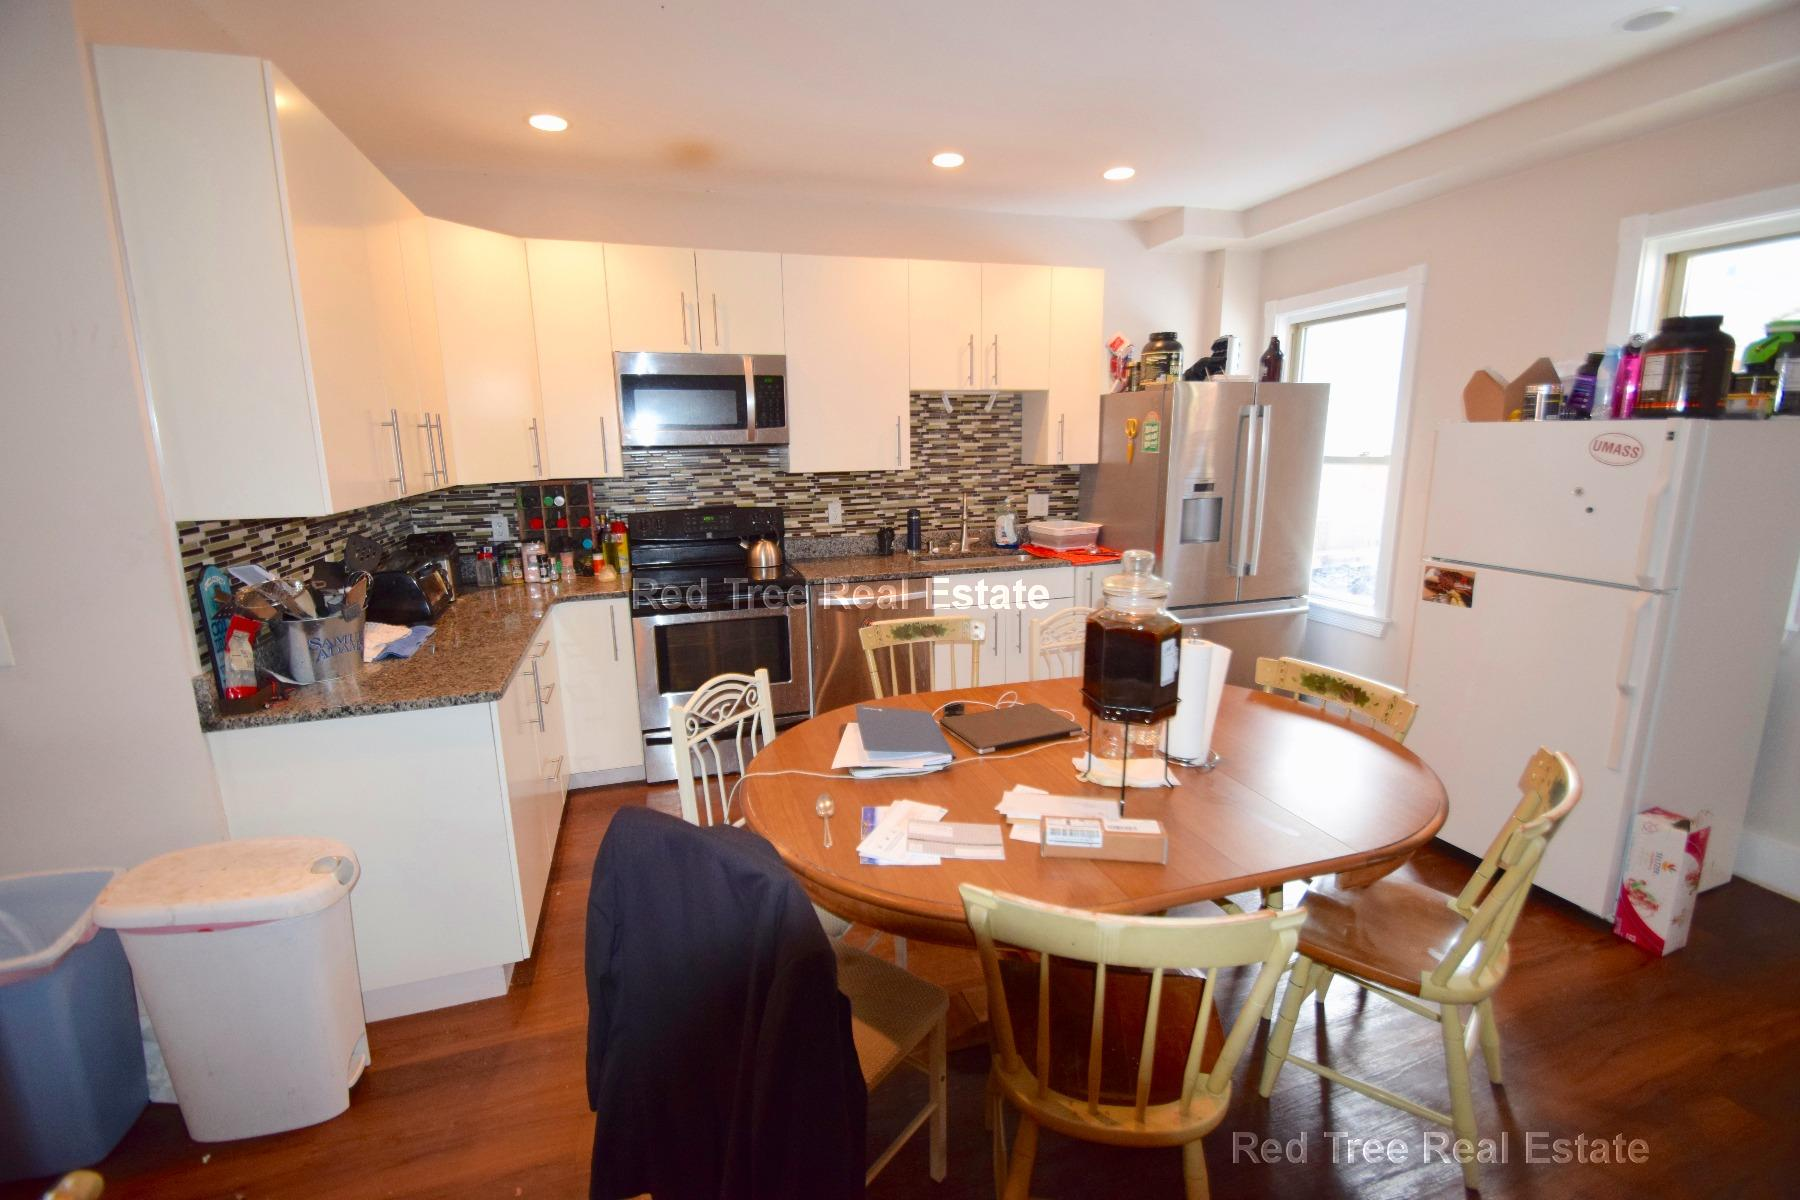 واحد منزل الأسرة للـ Rent في 17 Mackin Street 17 Mackin Street Boston, Massachusetts 02135 United States